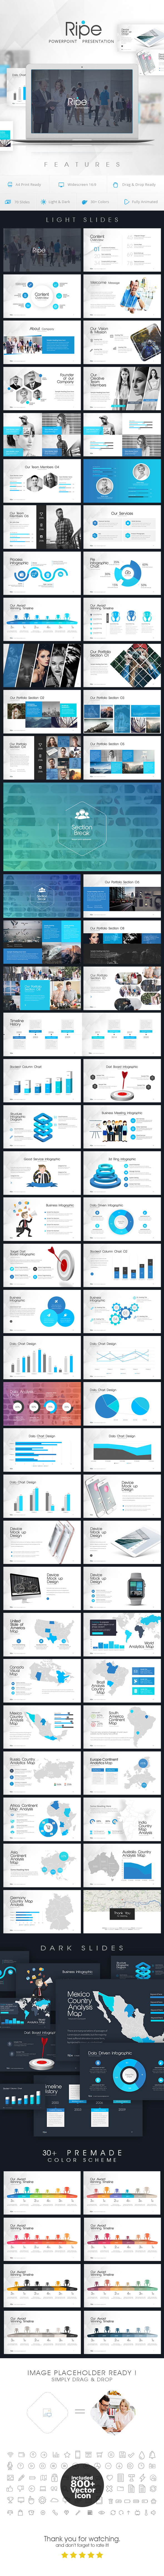 Ripe Power Point Presentation - Business PowerPoint Templates